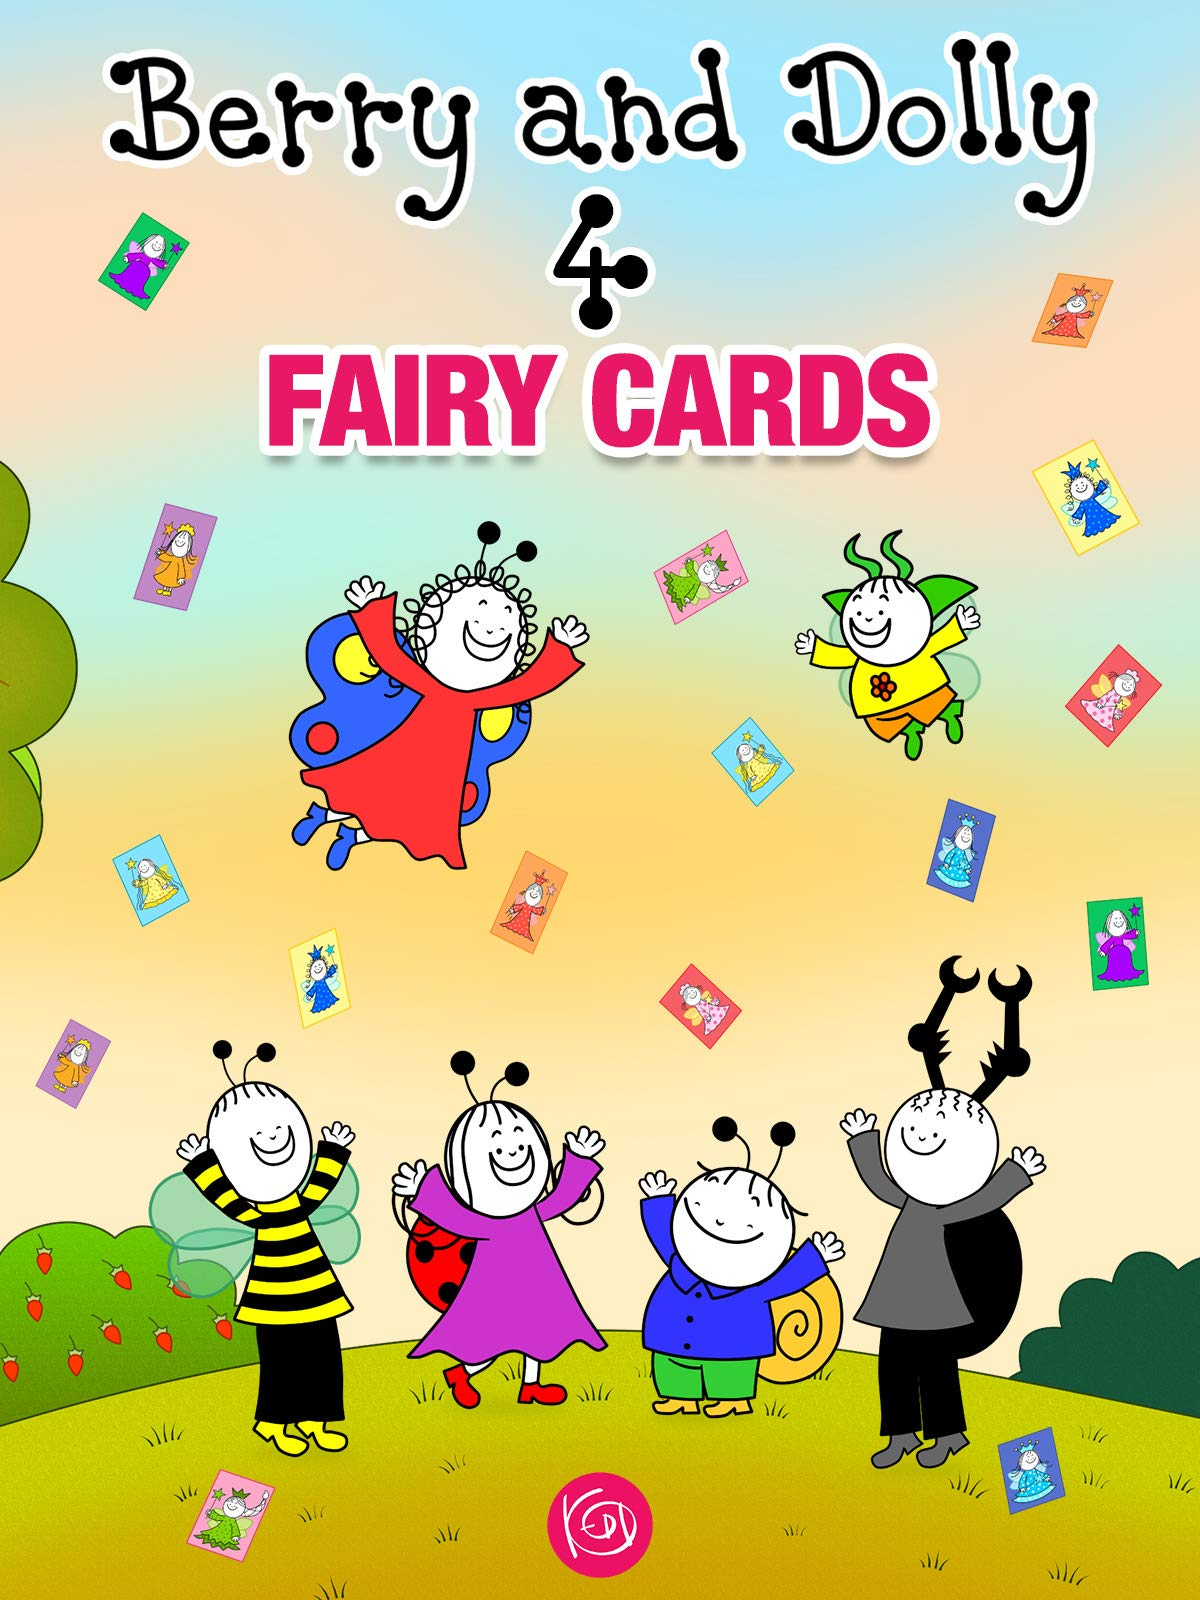 Berry and Dolly - Fairy Cards on Amazon Prime Video UK